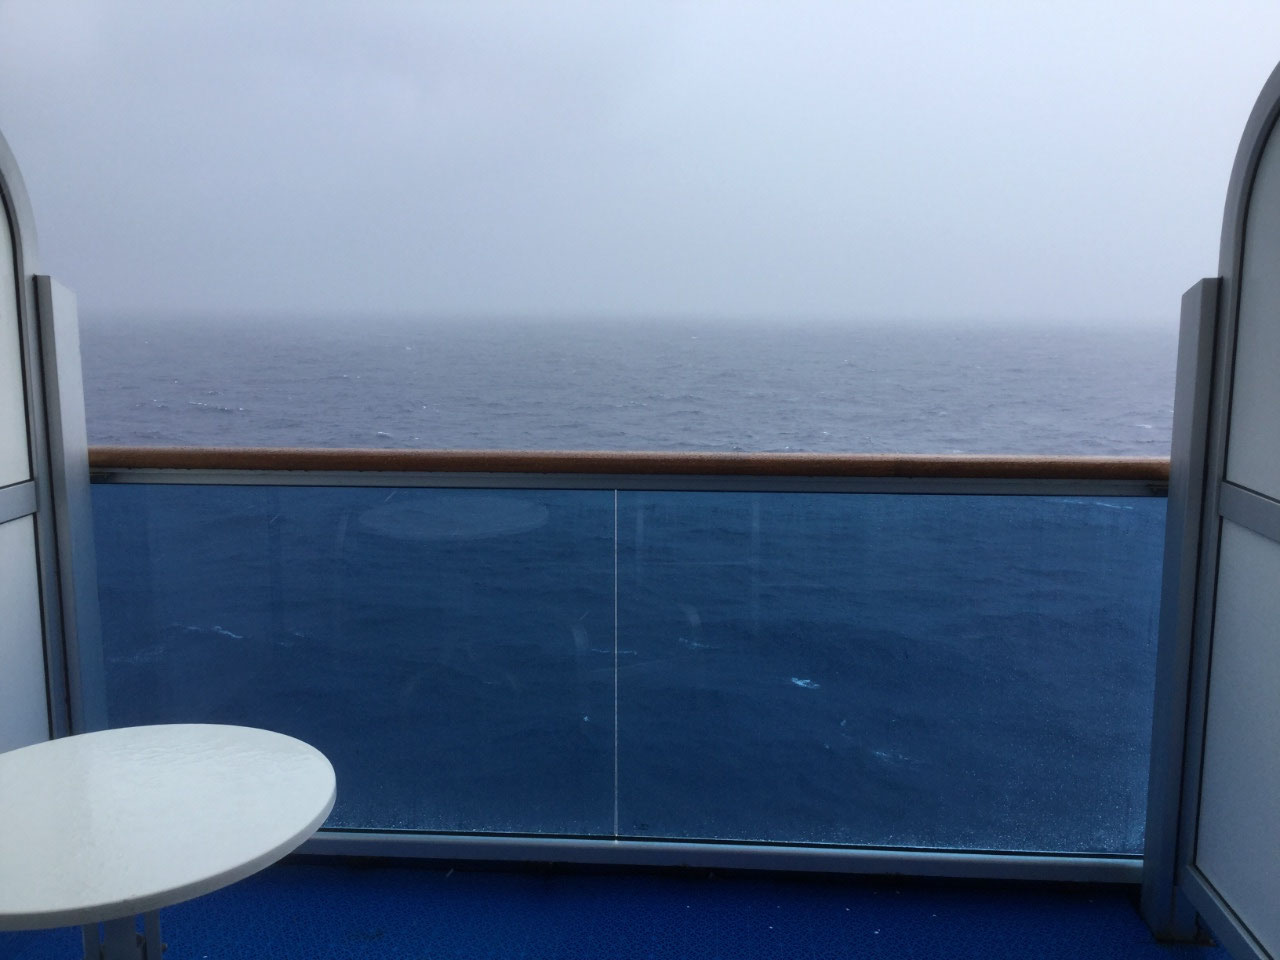 Rainy day at sea